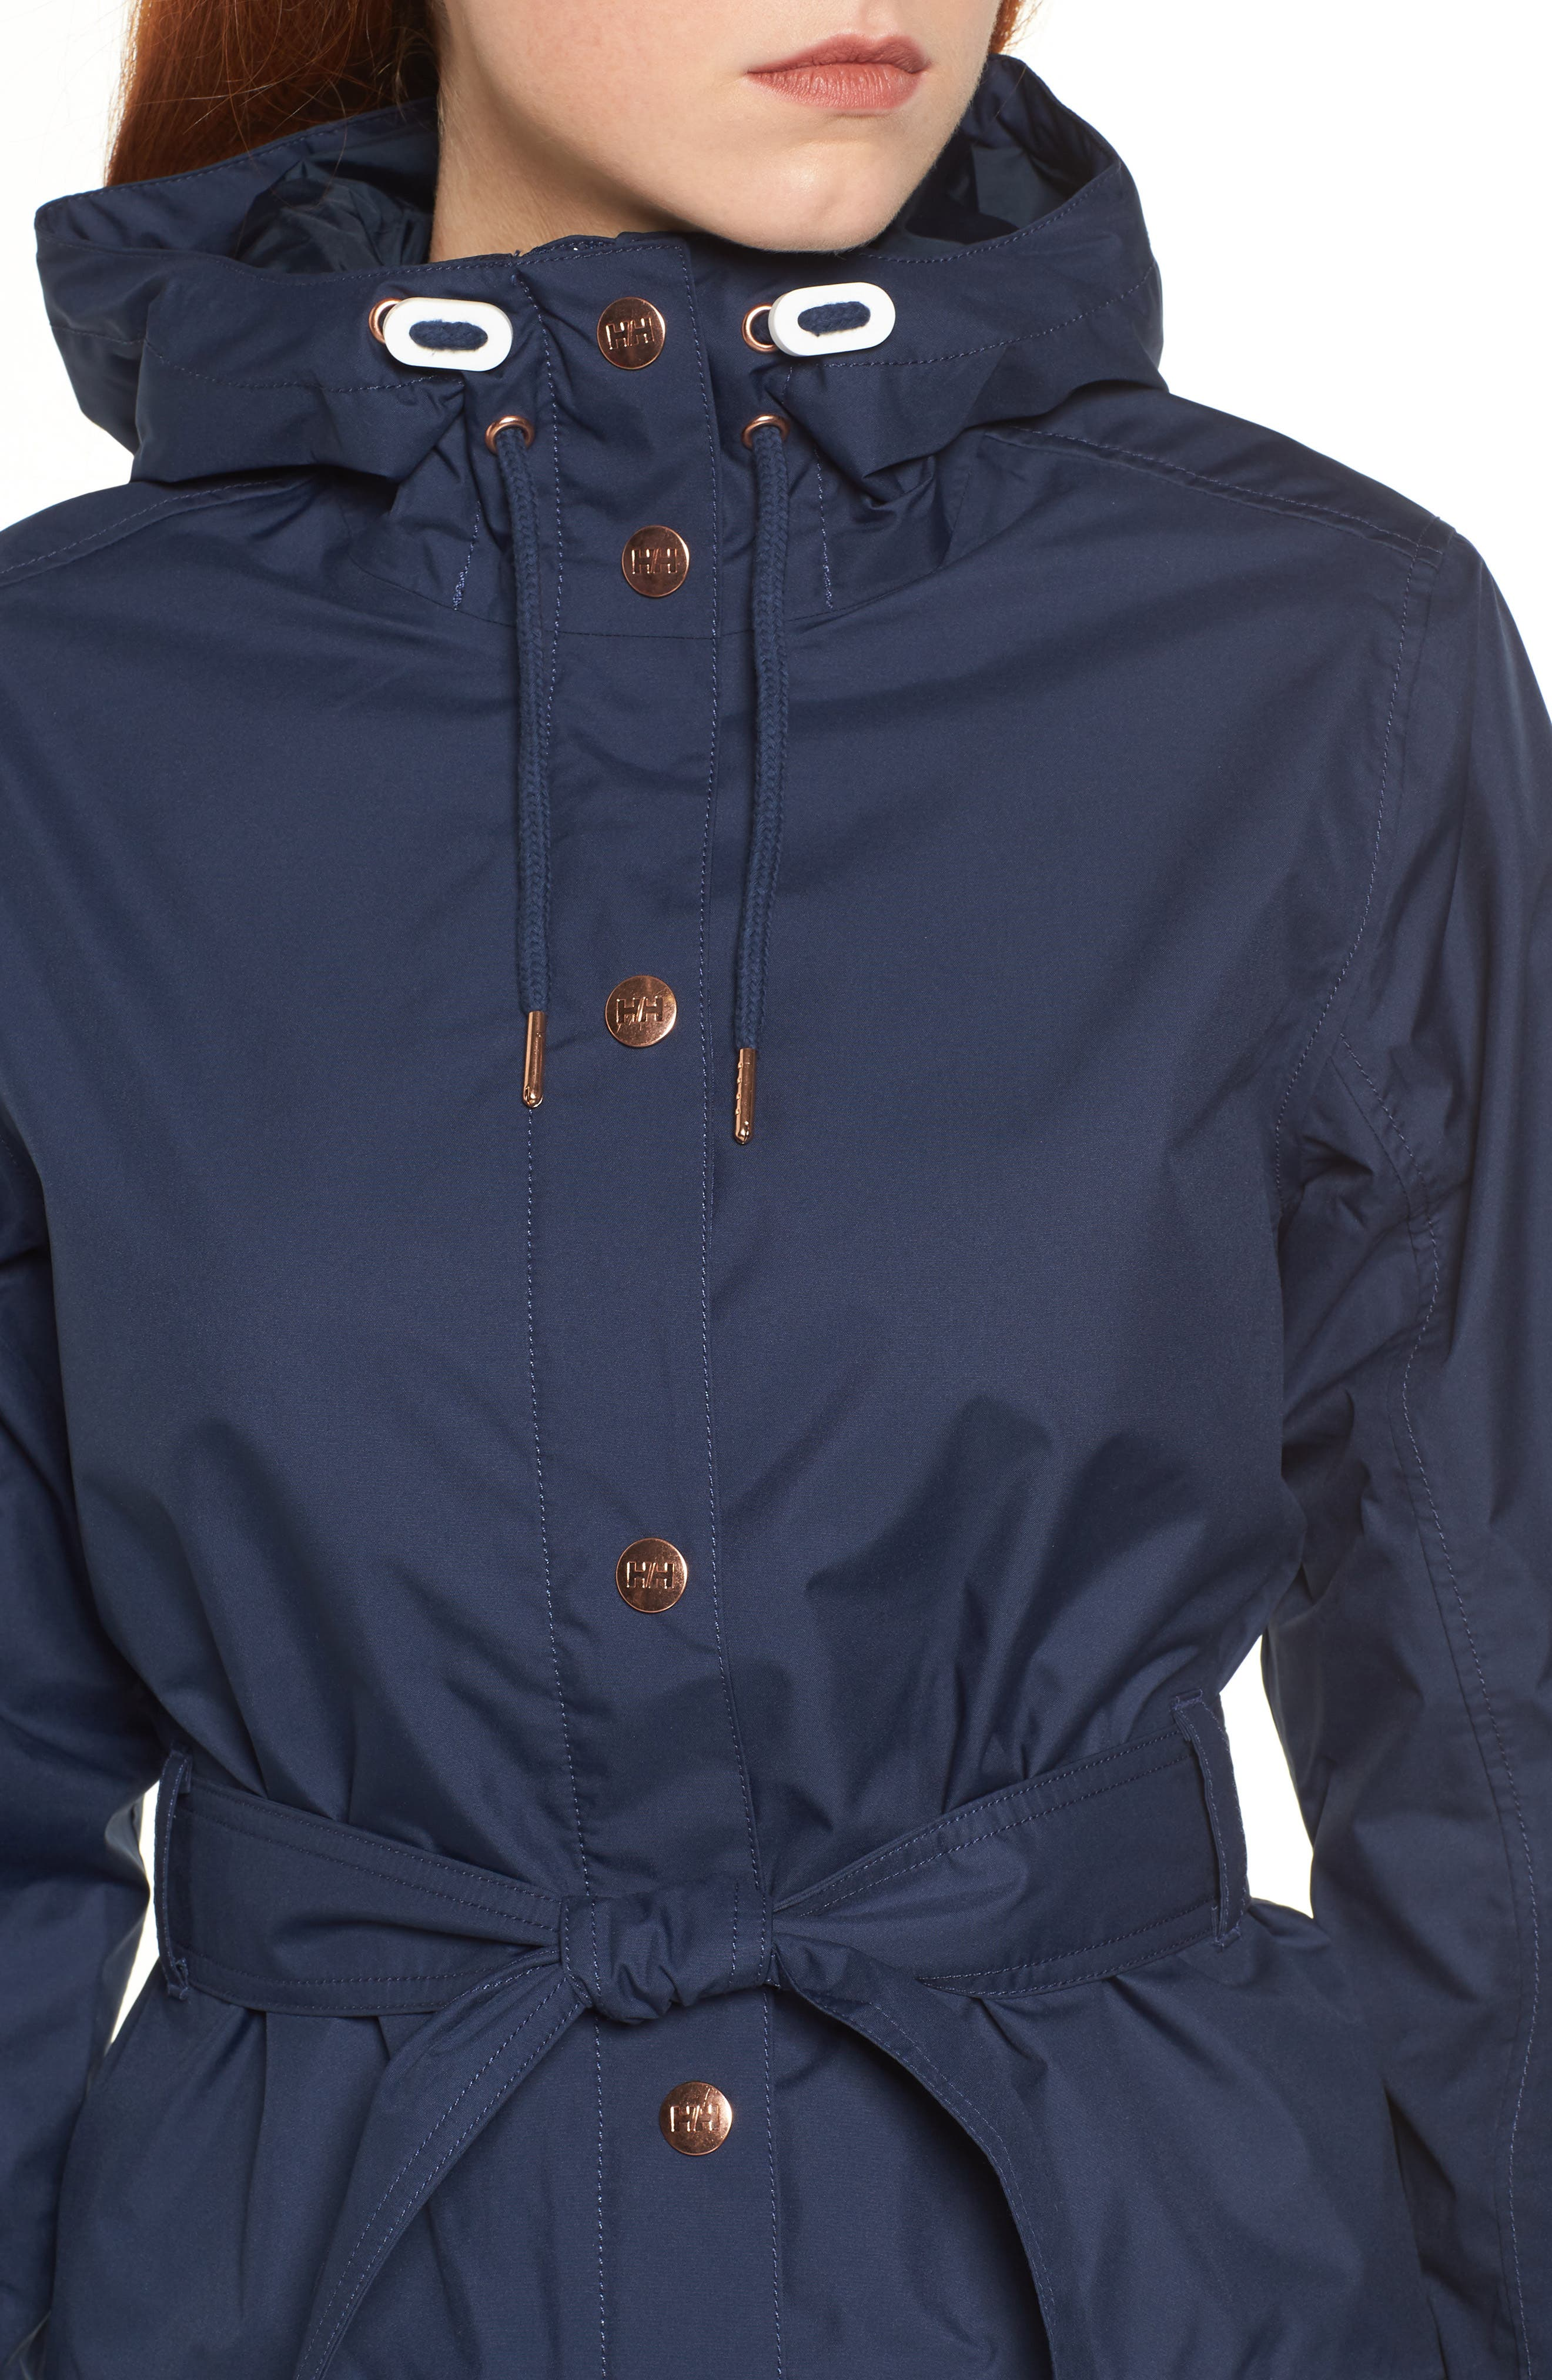 Lyness Rain Jacket,                             Alternate thumbnail 4, color,                             495